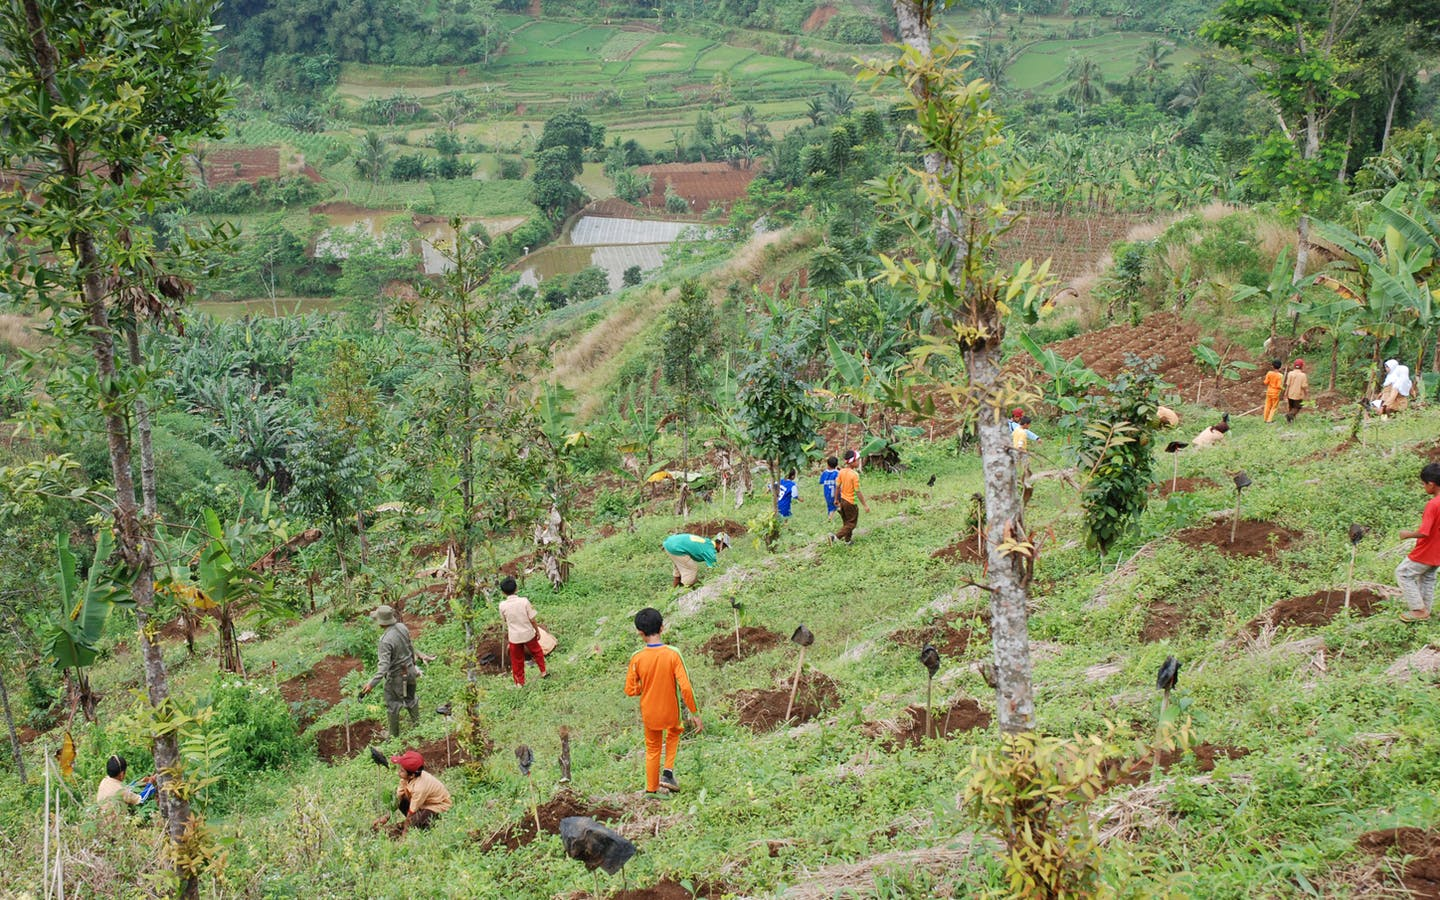 Daikin Industries Ltd is providing support to the Green Wall Project to reforest the degraded areas in Indonesia